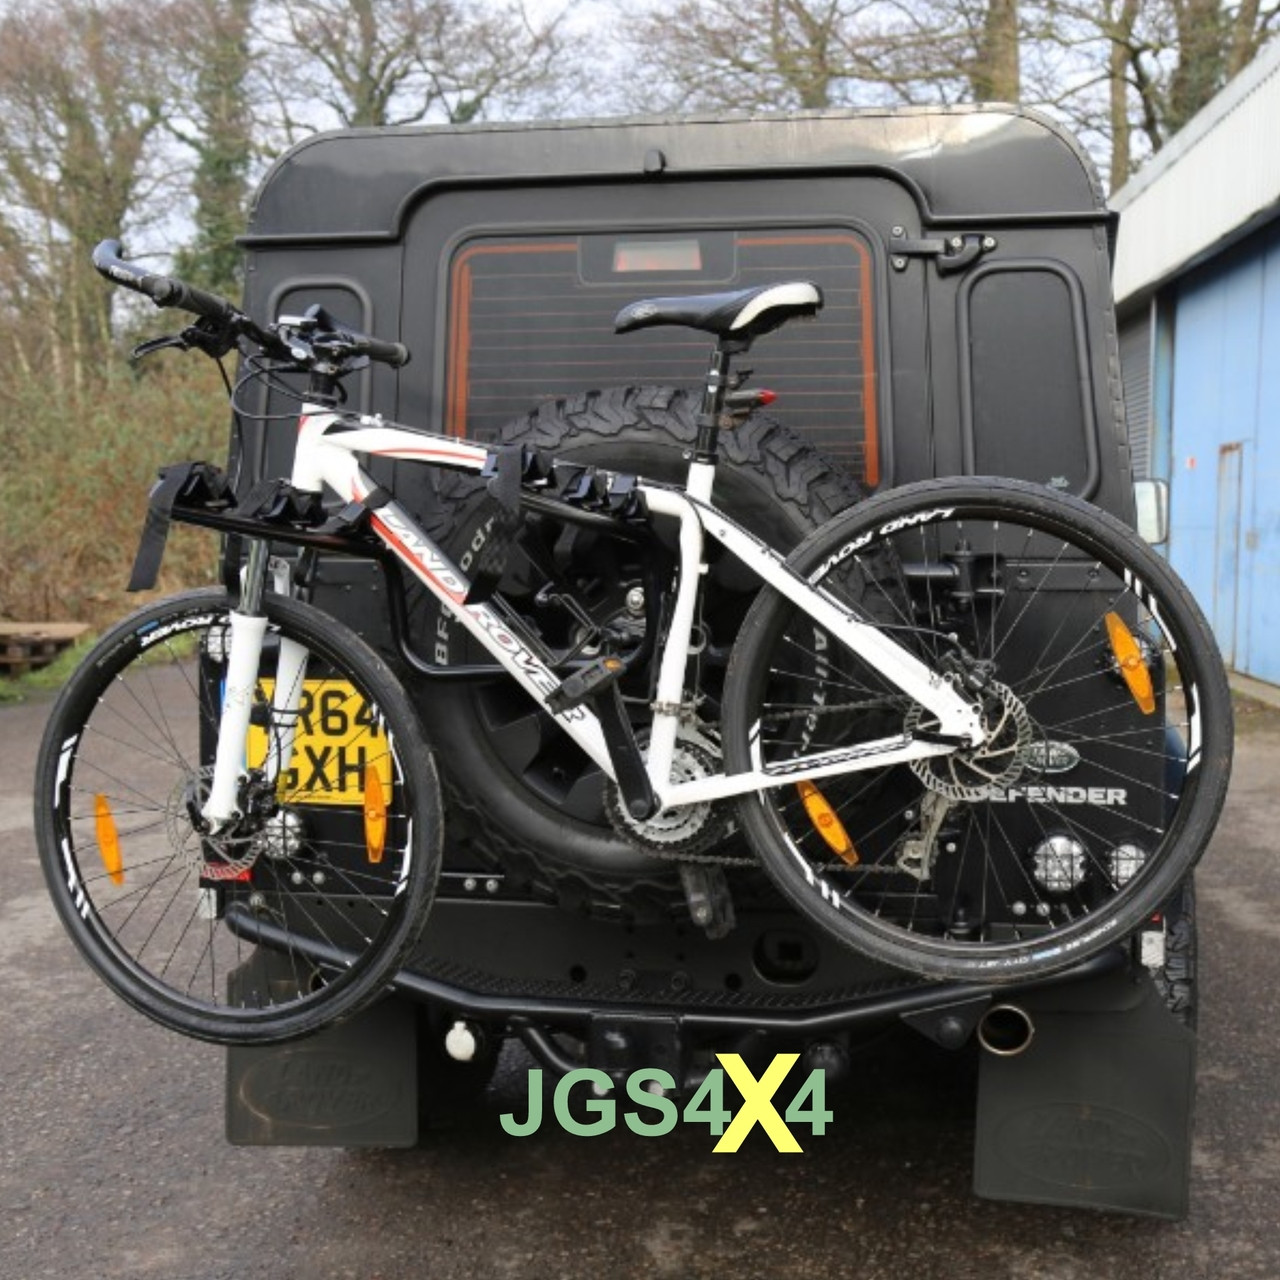 rack roof image discovery bike landyzone land com img included b and rover landrover staticflickr proxy